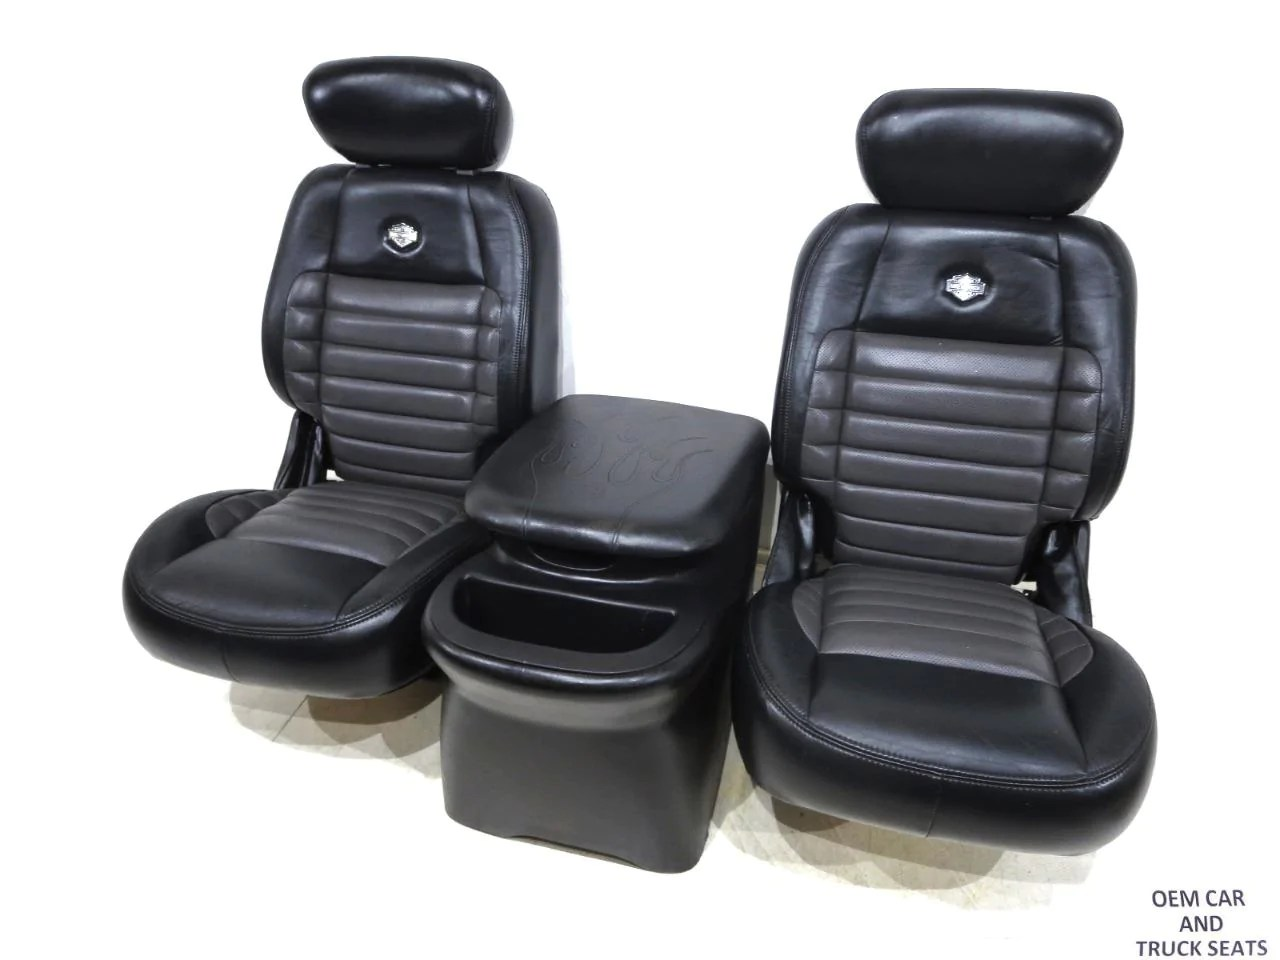 ford f 150 harley rear leather bucket seats 1997 2000 2001 2002 2003 [ 1280 x 960 Pixel ]